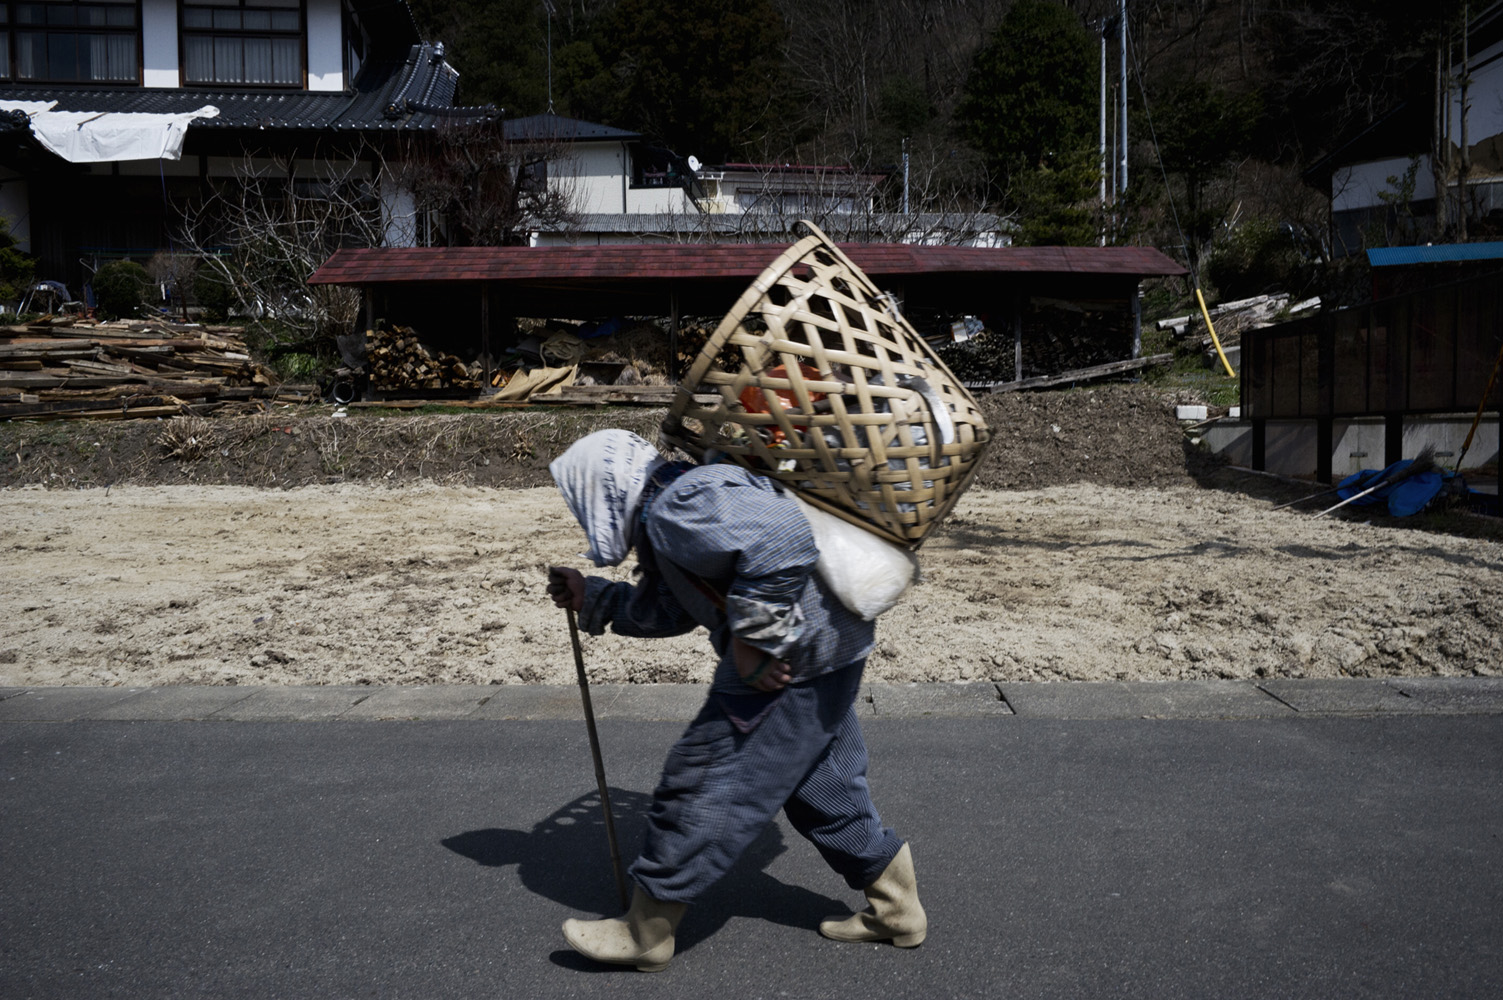 Koriyama,  Japan, 7 April 2011 - An elderly farmer carries a basket of produce on the outskirts of Koriyama City, 60 km south of the Fukushima Daiichi Nuclear Power Plant. Greenpeace is working in the area to monitor radioactive contamination of food and soil to estimate health risks to the local population.